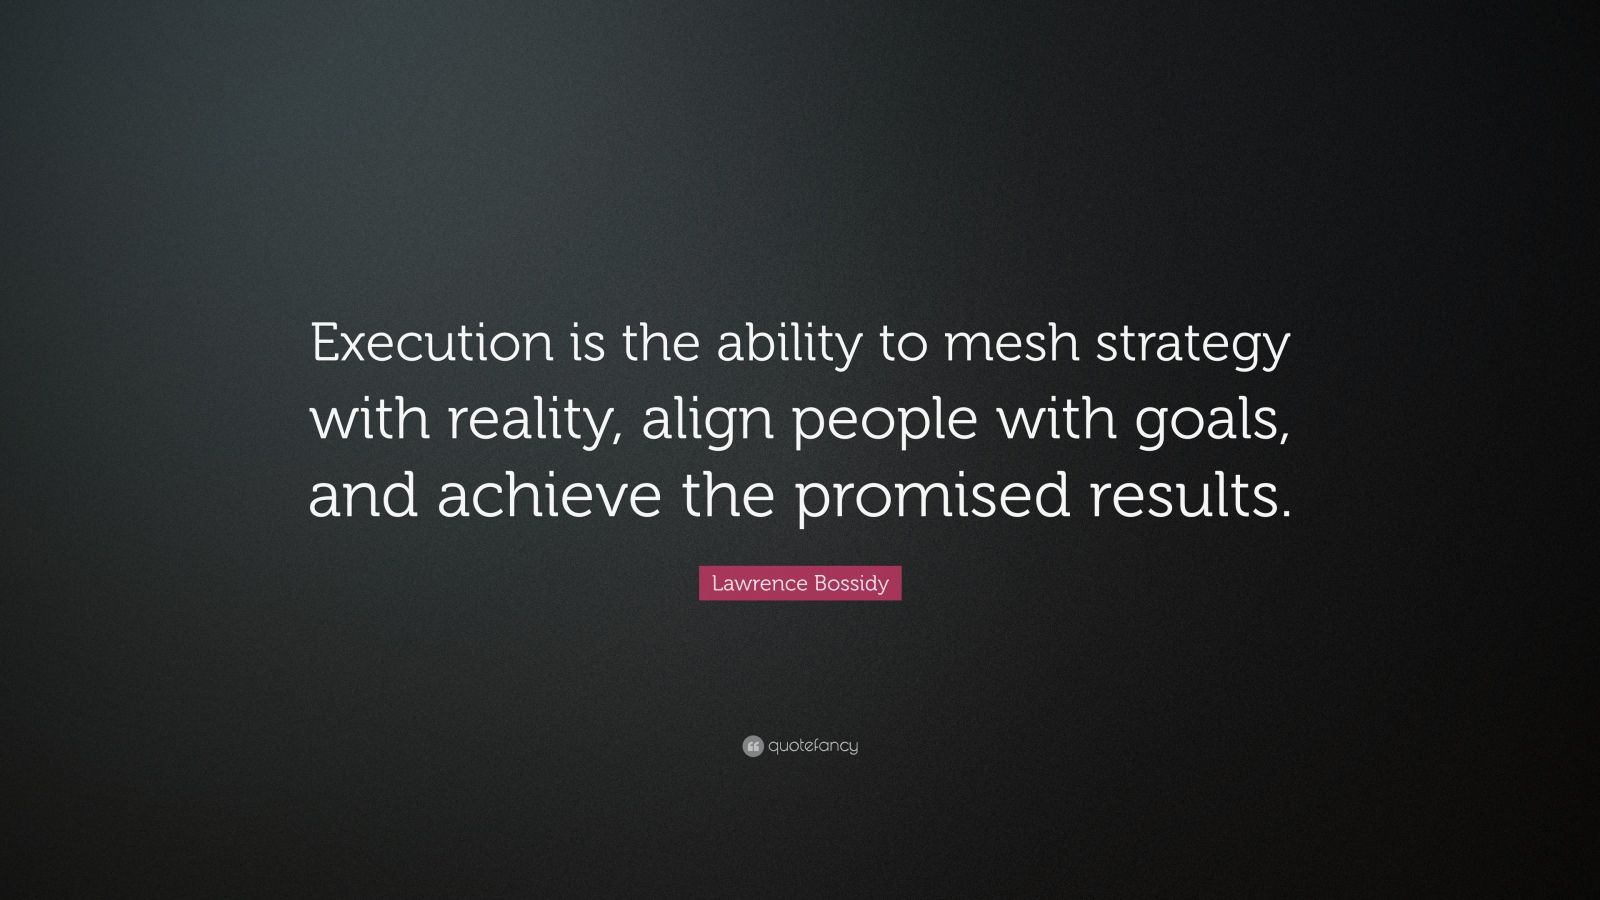 """Lawrence Bossidy Quote: """"Execution is the ability to mesh strategy with reality, align people with goals, and achieve the promised results."""""""